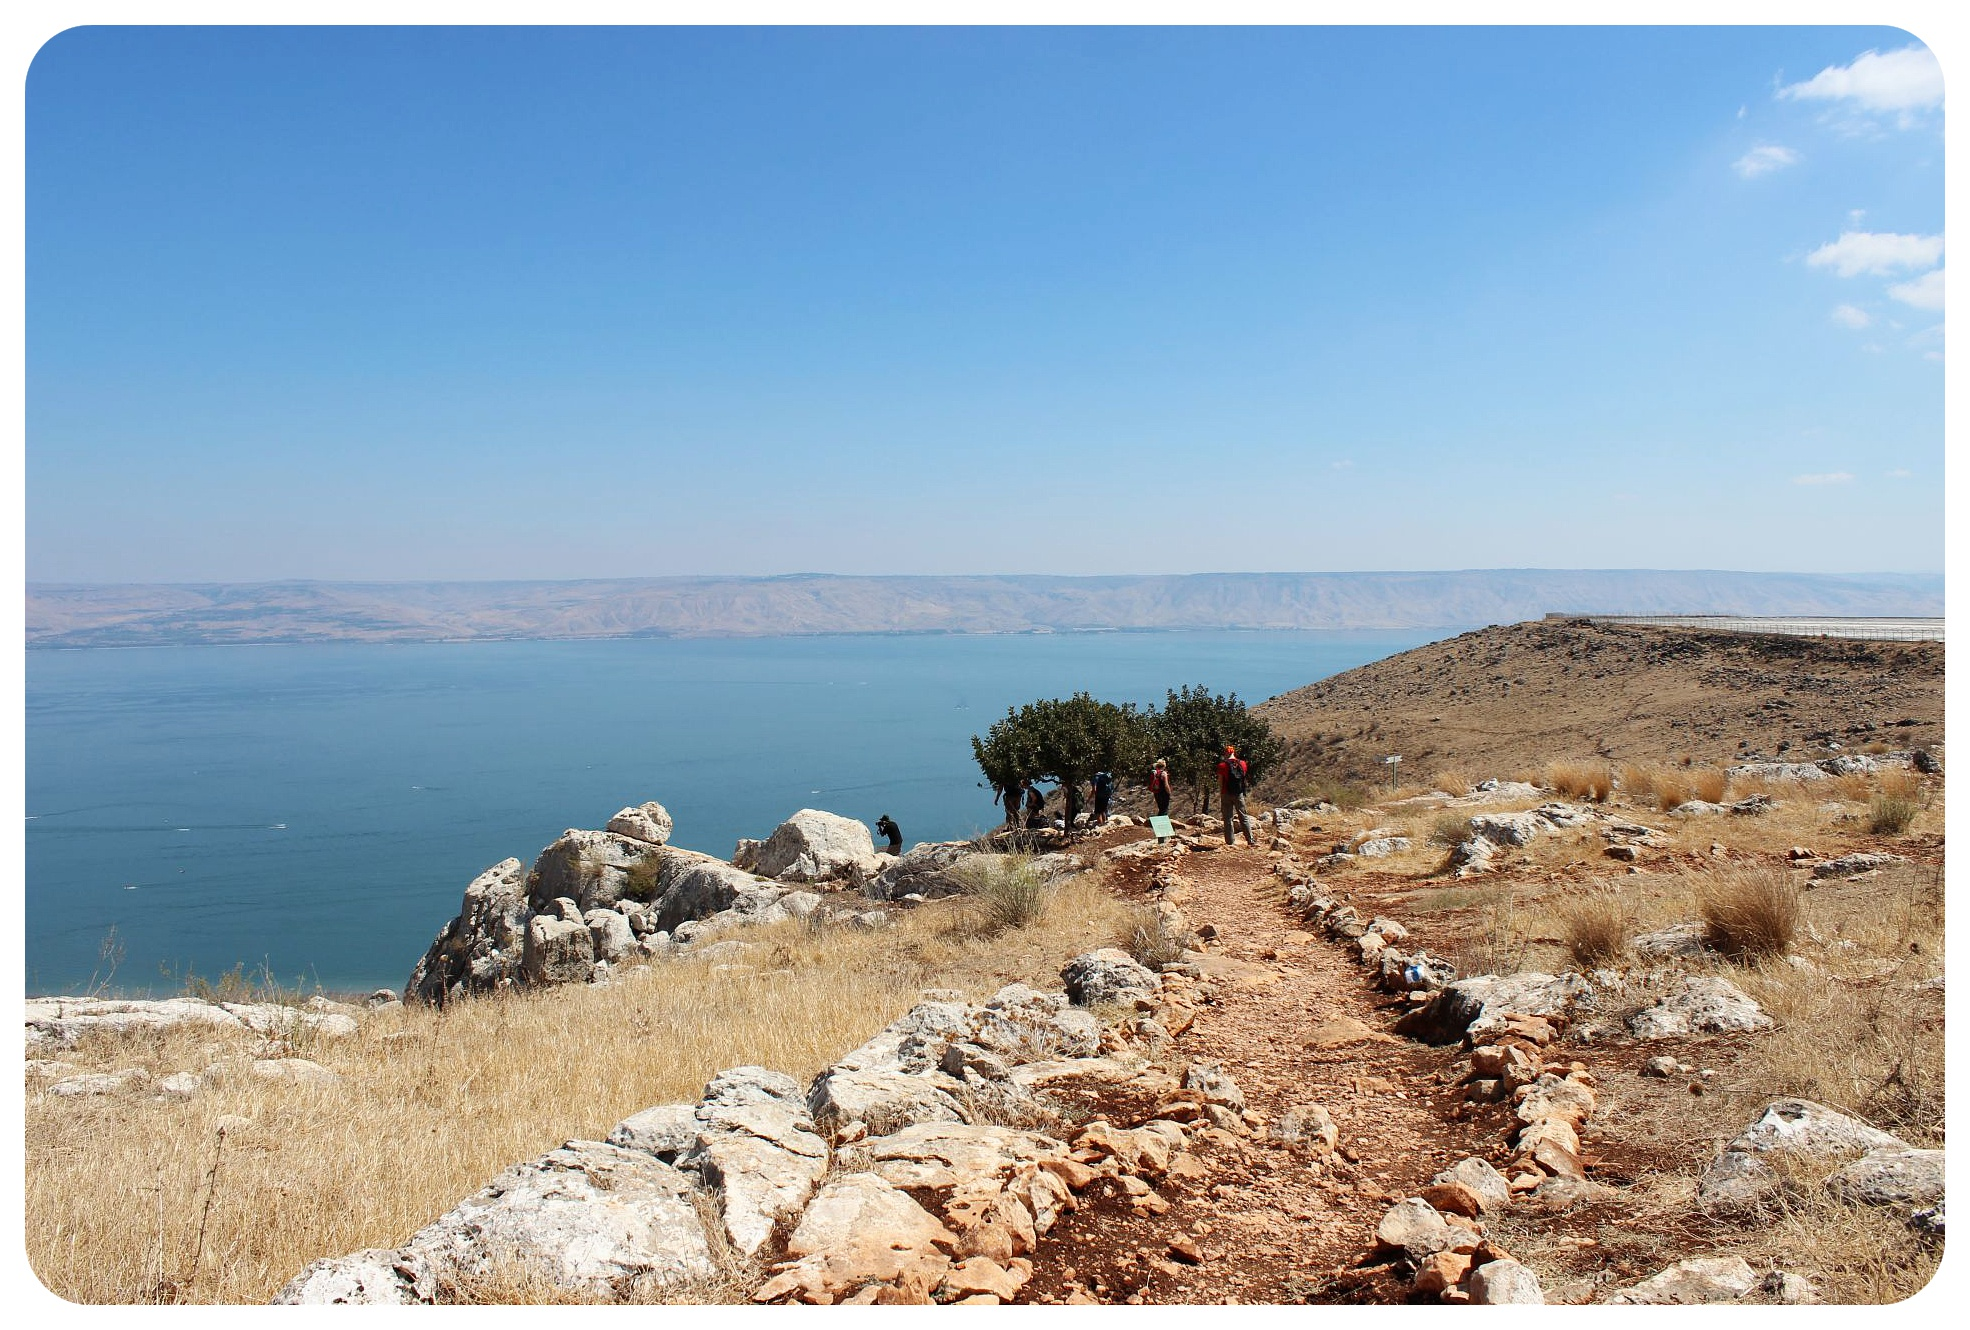 mount arbel hiking trail